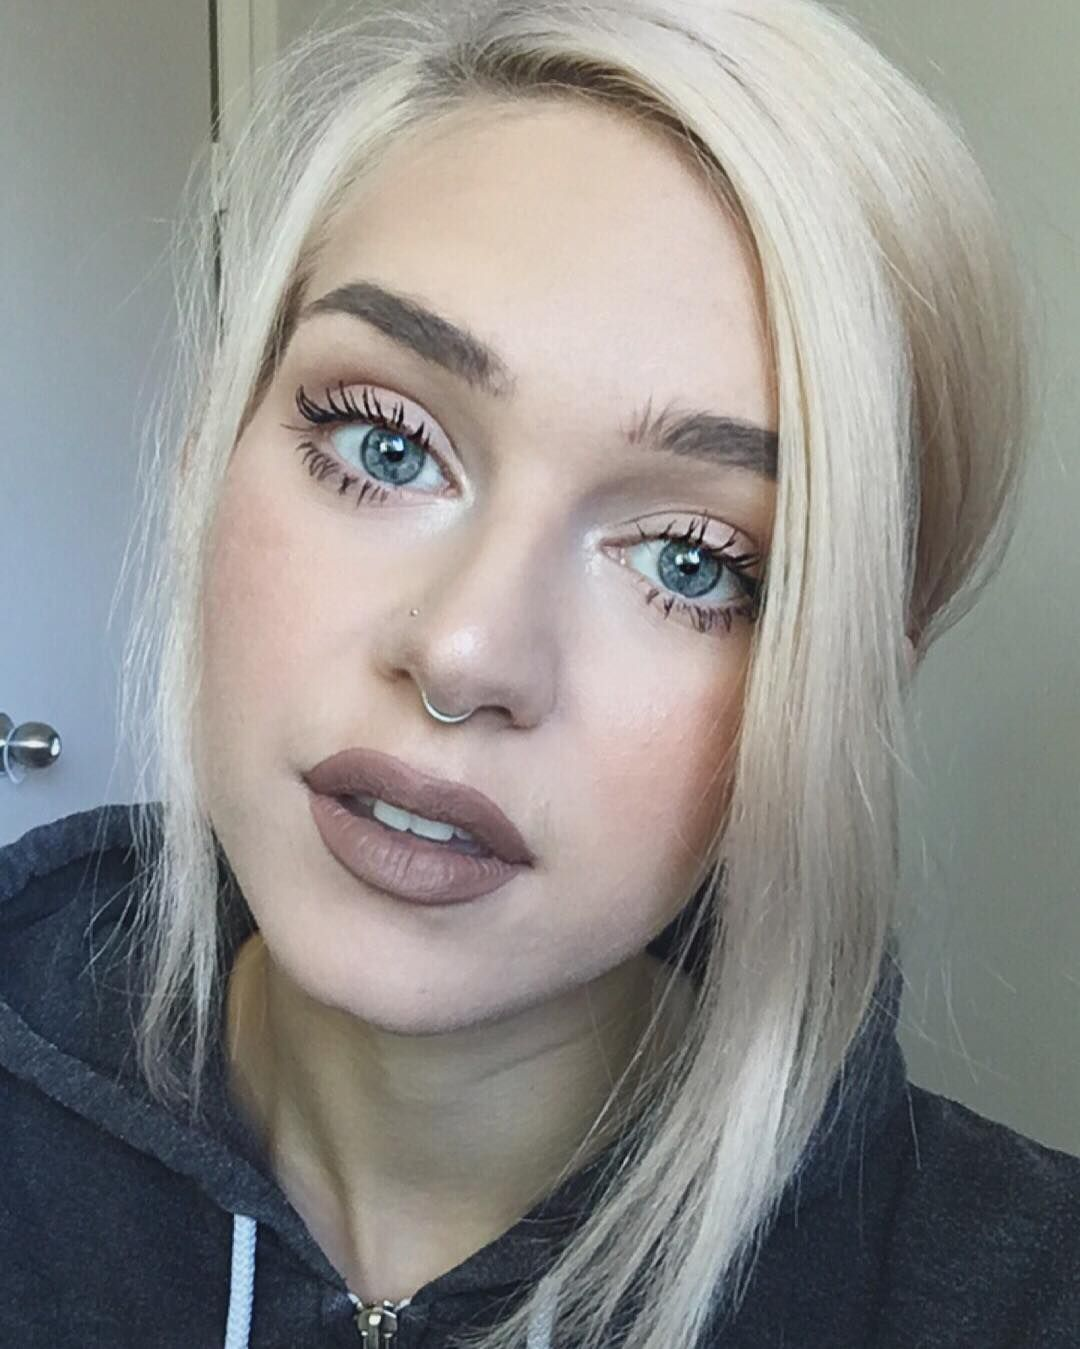 Bull nose piercing  Neutral makeup with extreme side part and septum piercing